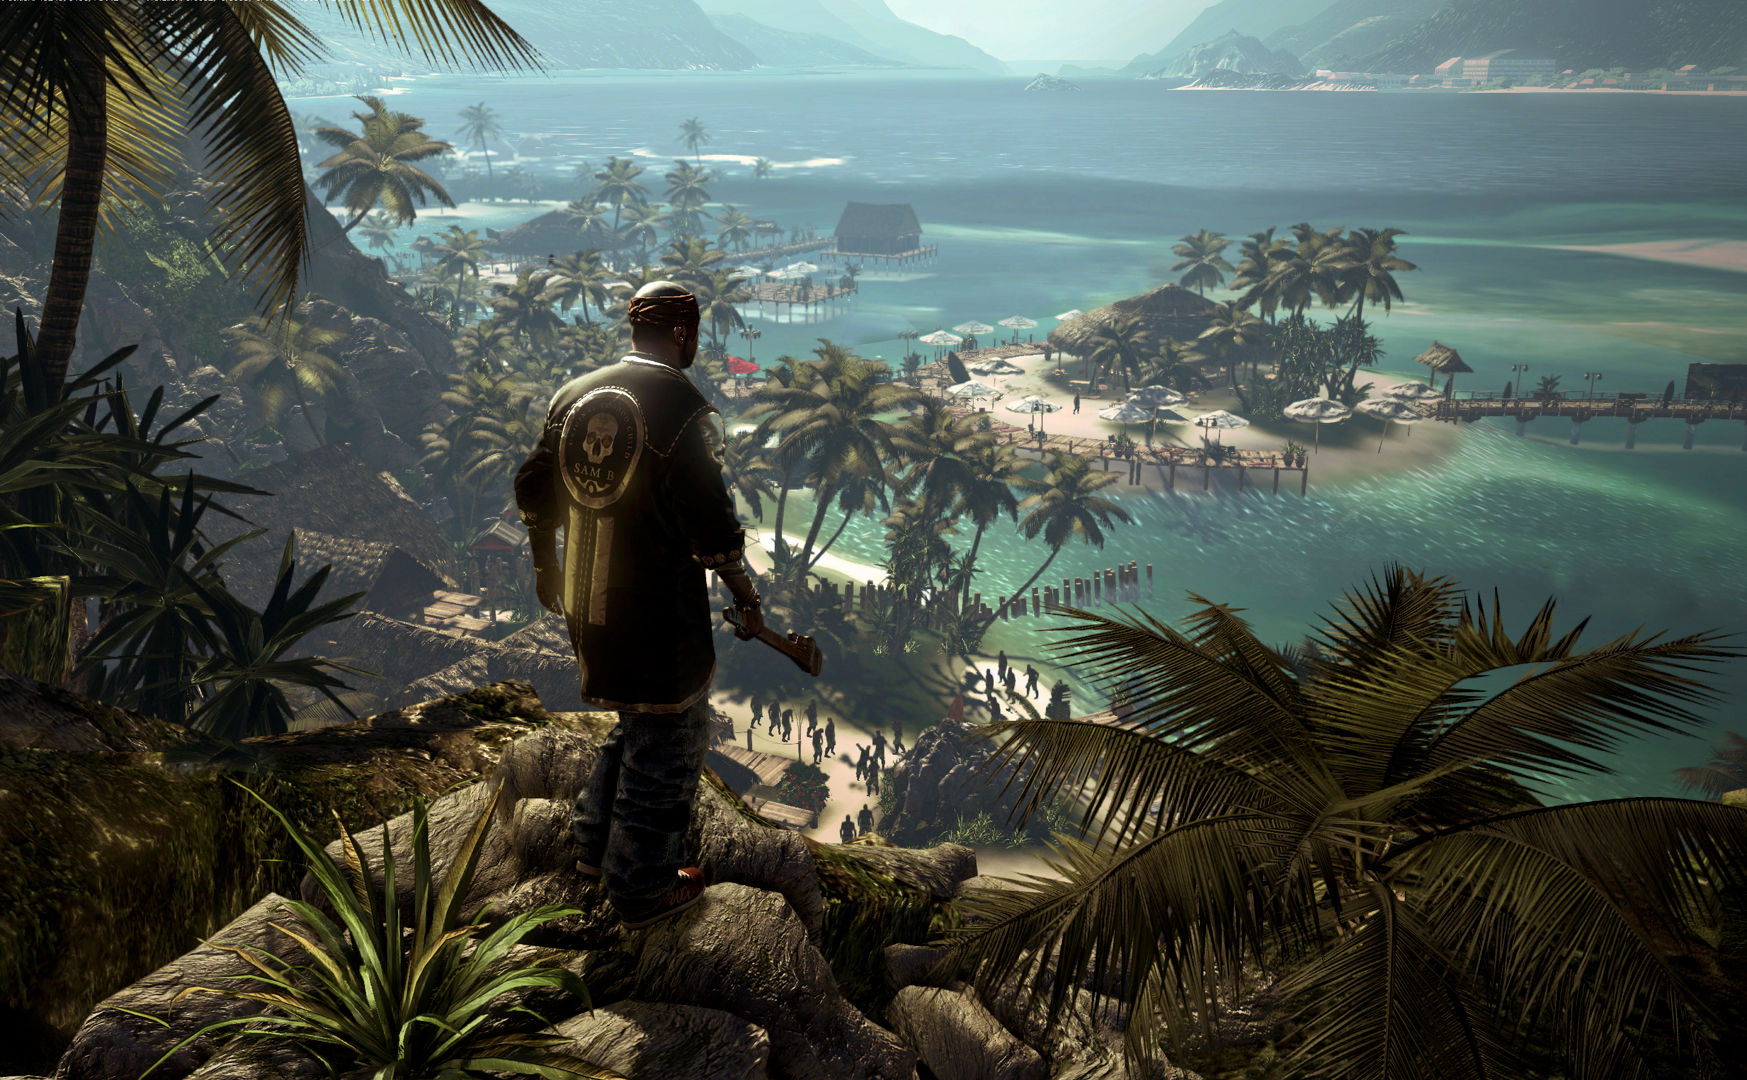 Dead Island, Toy Soldiers: Cold War go free on Xbox Live in Feb.